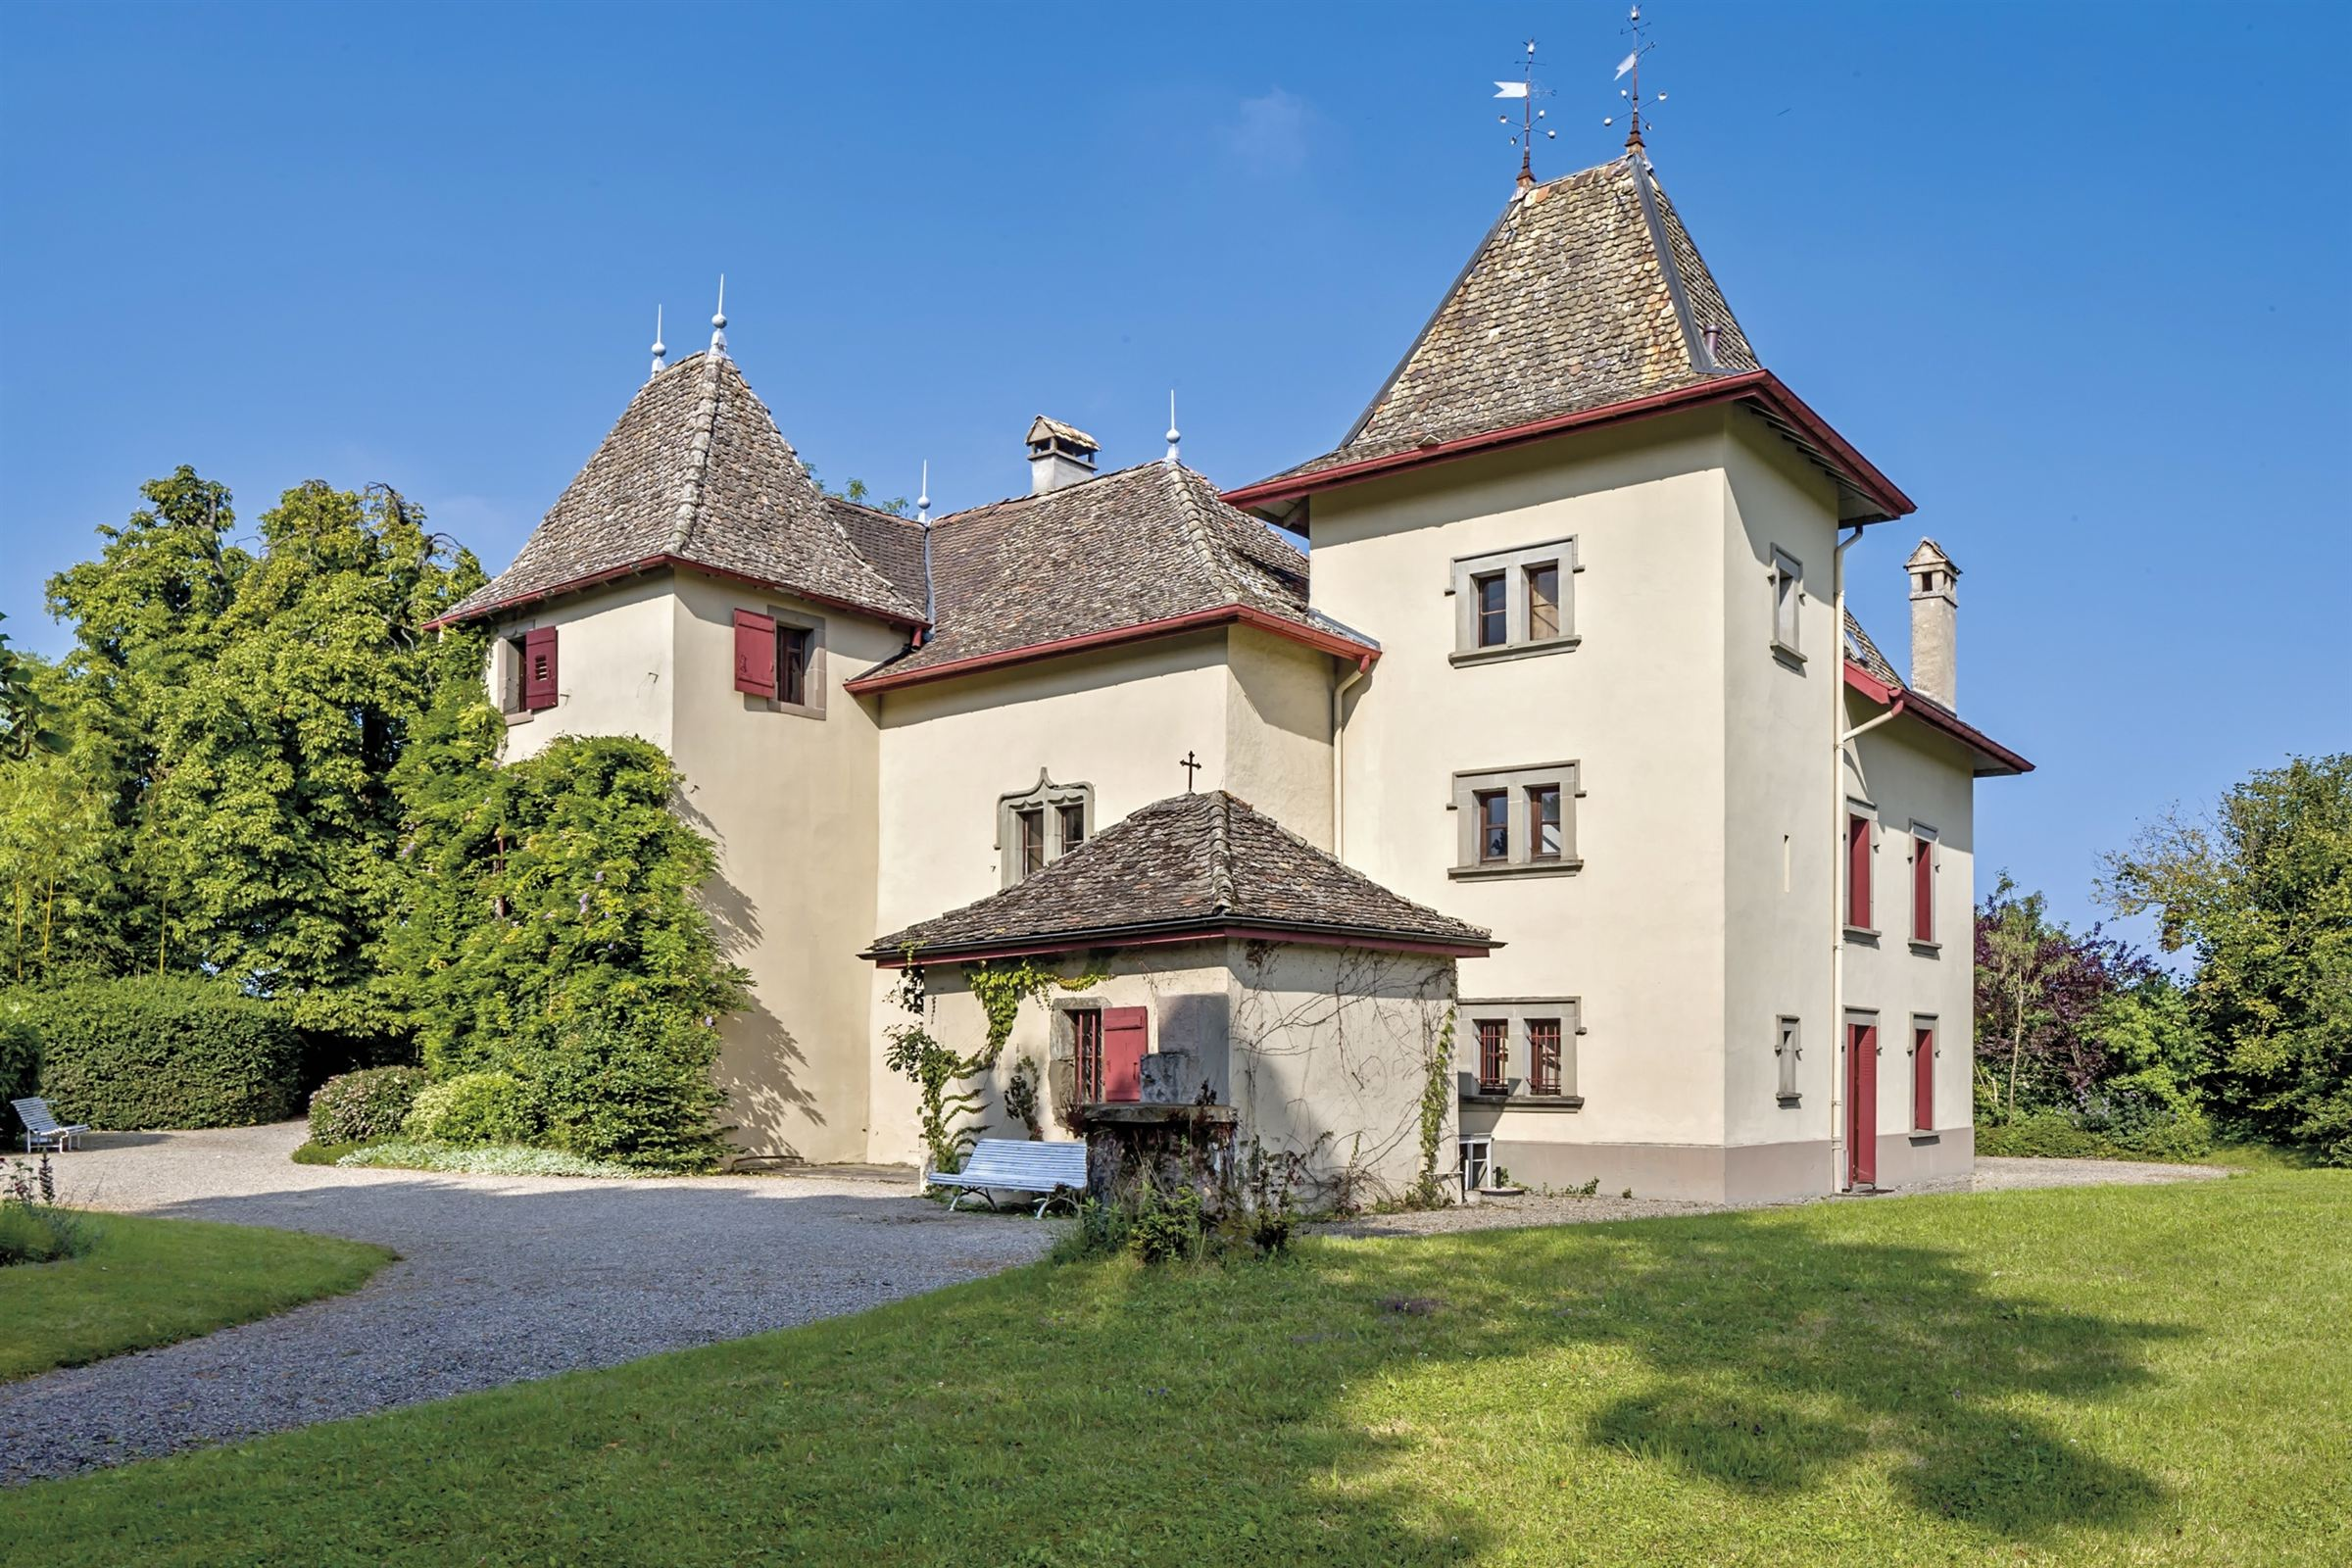 Property For Sale at MANSION OF 300 sqm on 11 636 m2 OF LANDSCAPED GROUND Thonon / Evian